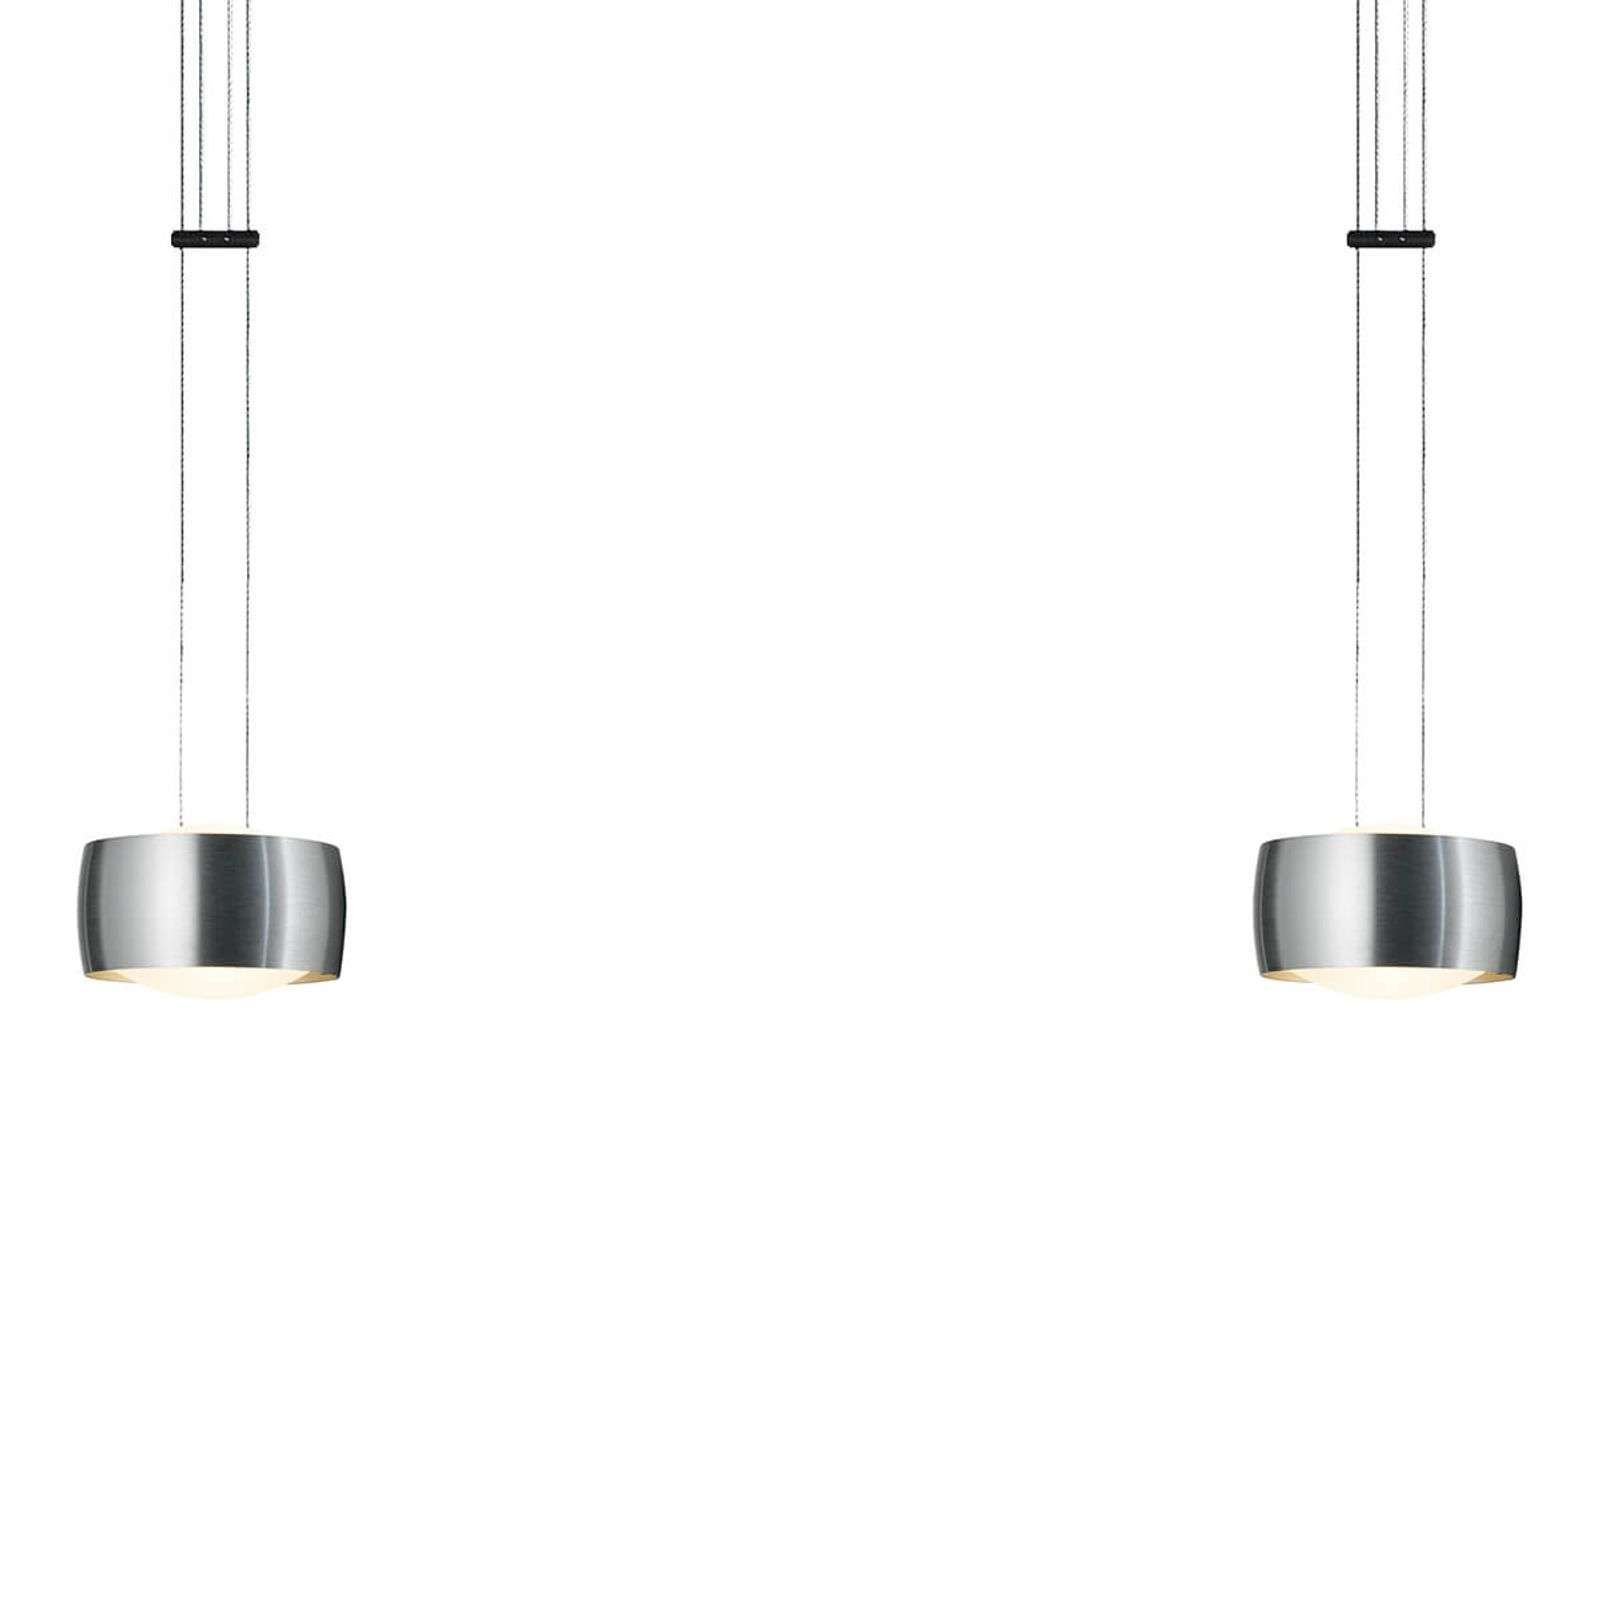 Oligo Grace Suspension Led A 2 Lampes Alu In 2020 Hangeleuchte Led Hangeleuchte Led Hangelampen